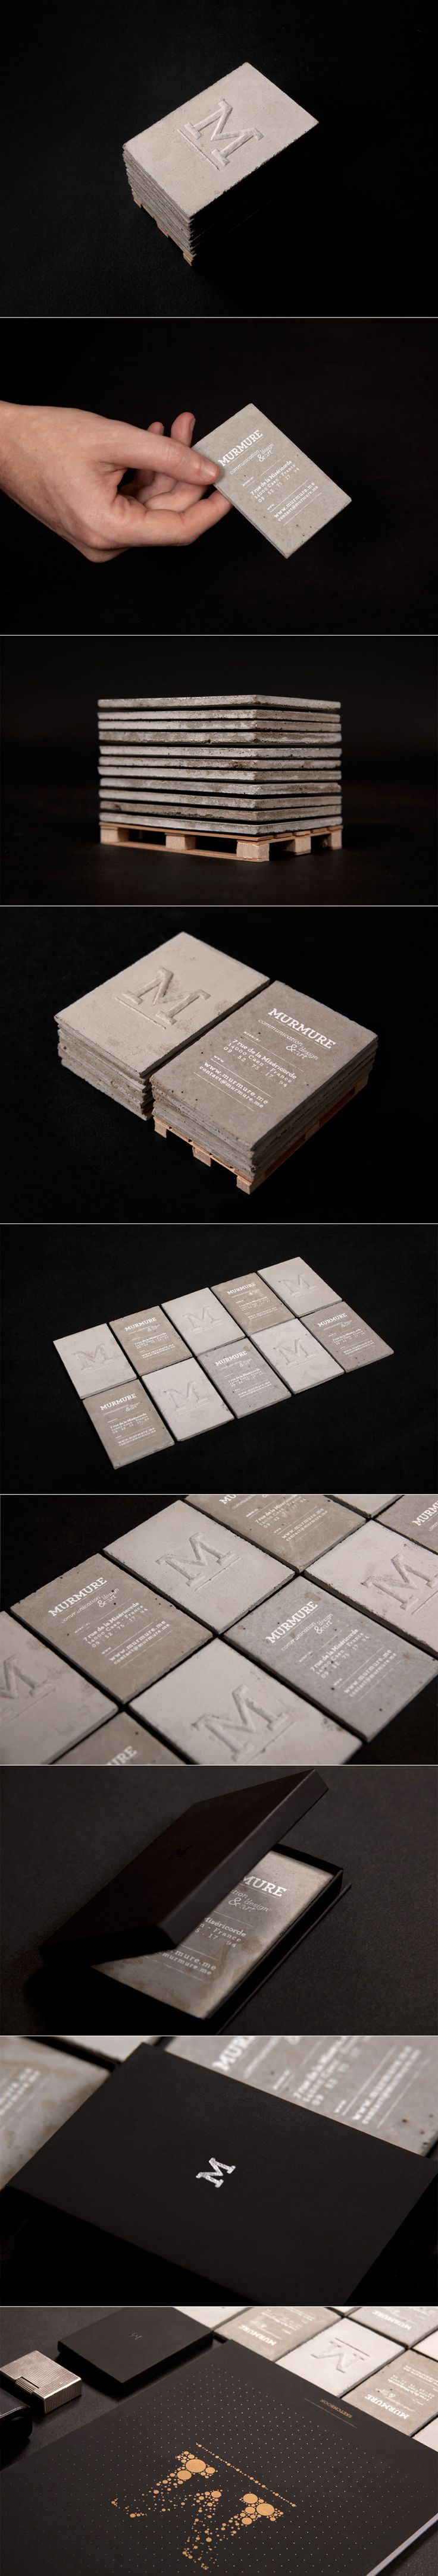 Concrete Biz Cards  @Ali Jaffal could be baba's kaman :P